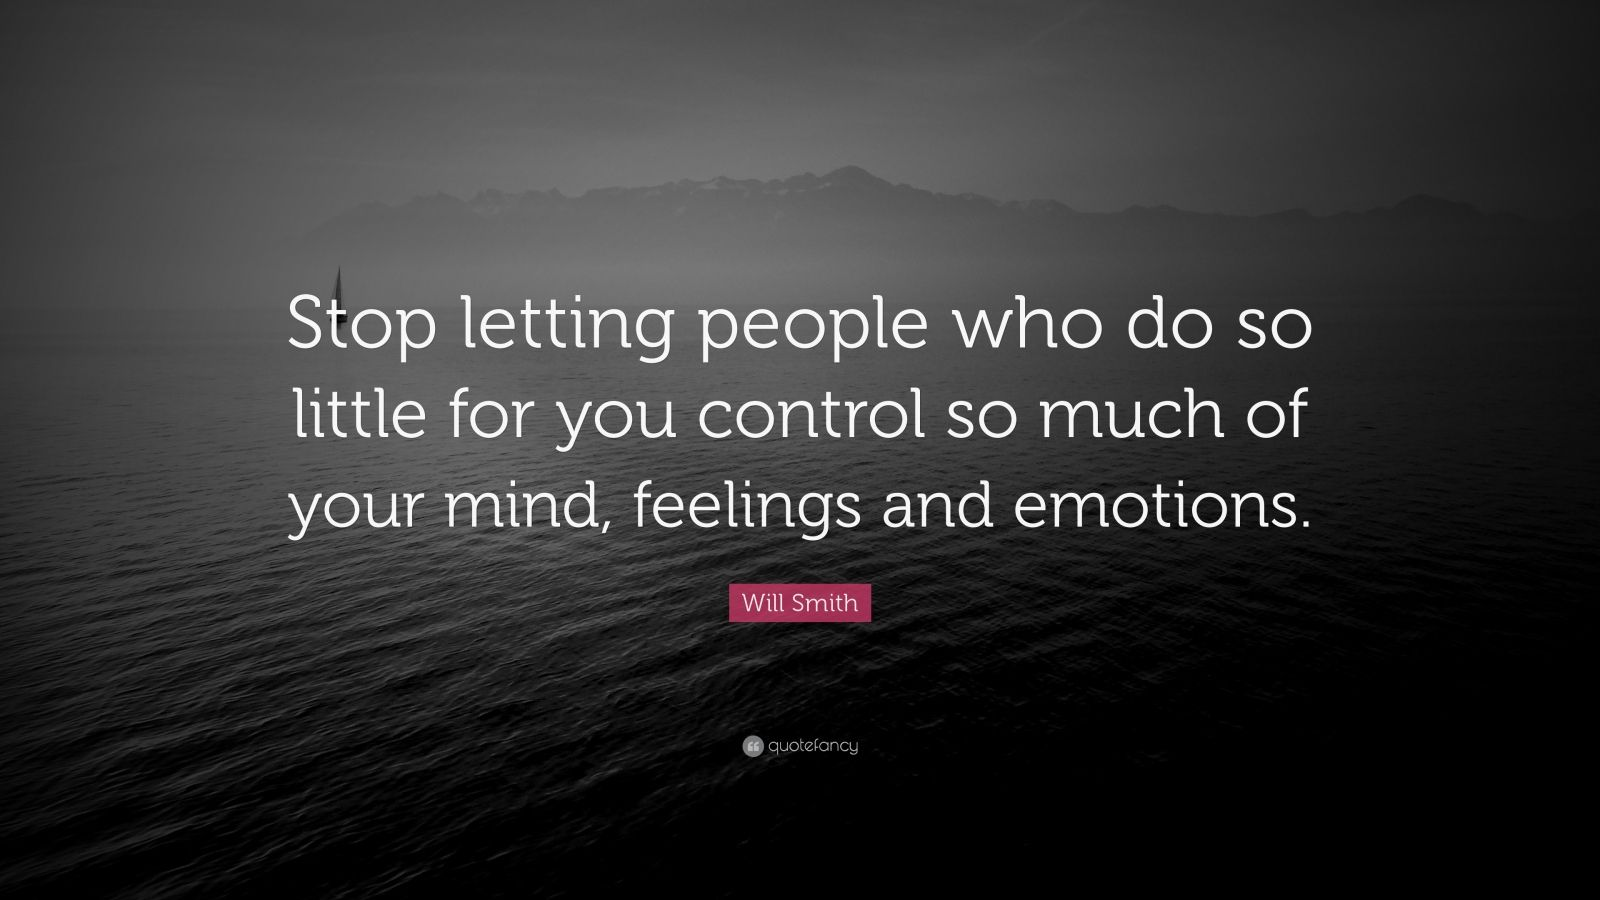 """Will Smith Quote: """"Stop letting people who do so little for you control so much of your mind, feelings and emotions."""""""